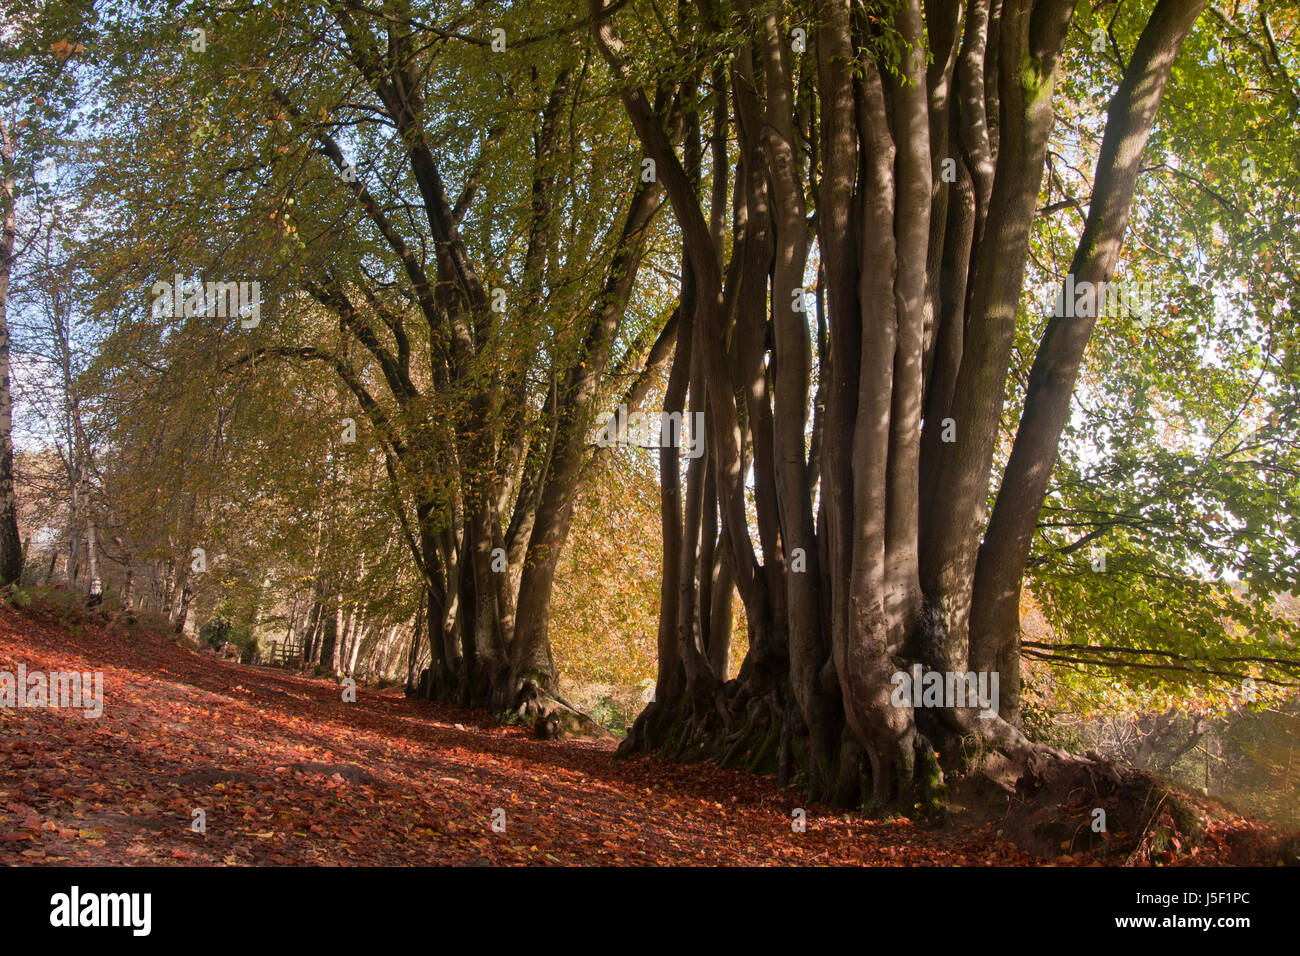 ancient beech trees (fagus sylvatica), Devils Punchbowl,largest spring-sapped valley in Britain dating  back to - Stock Image